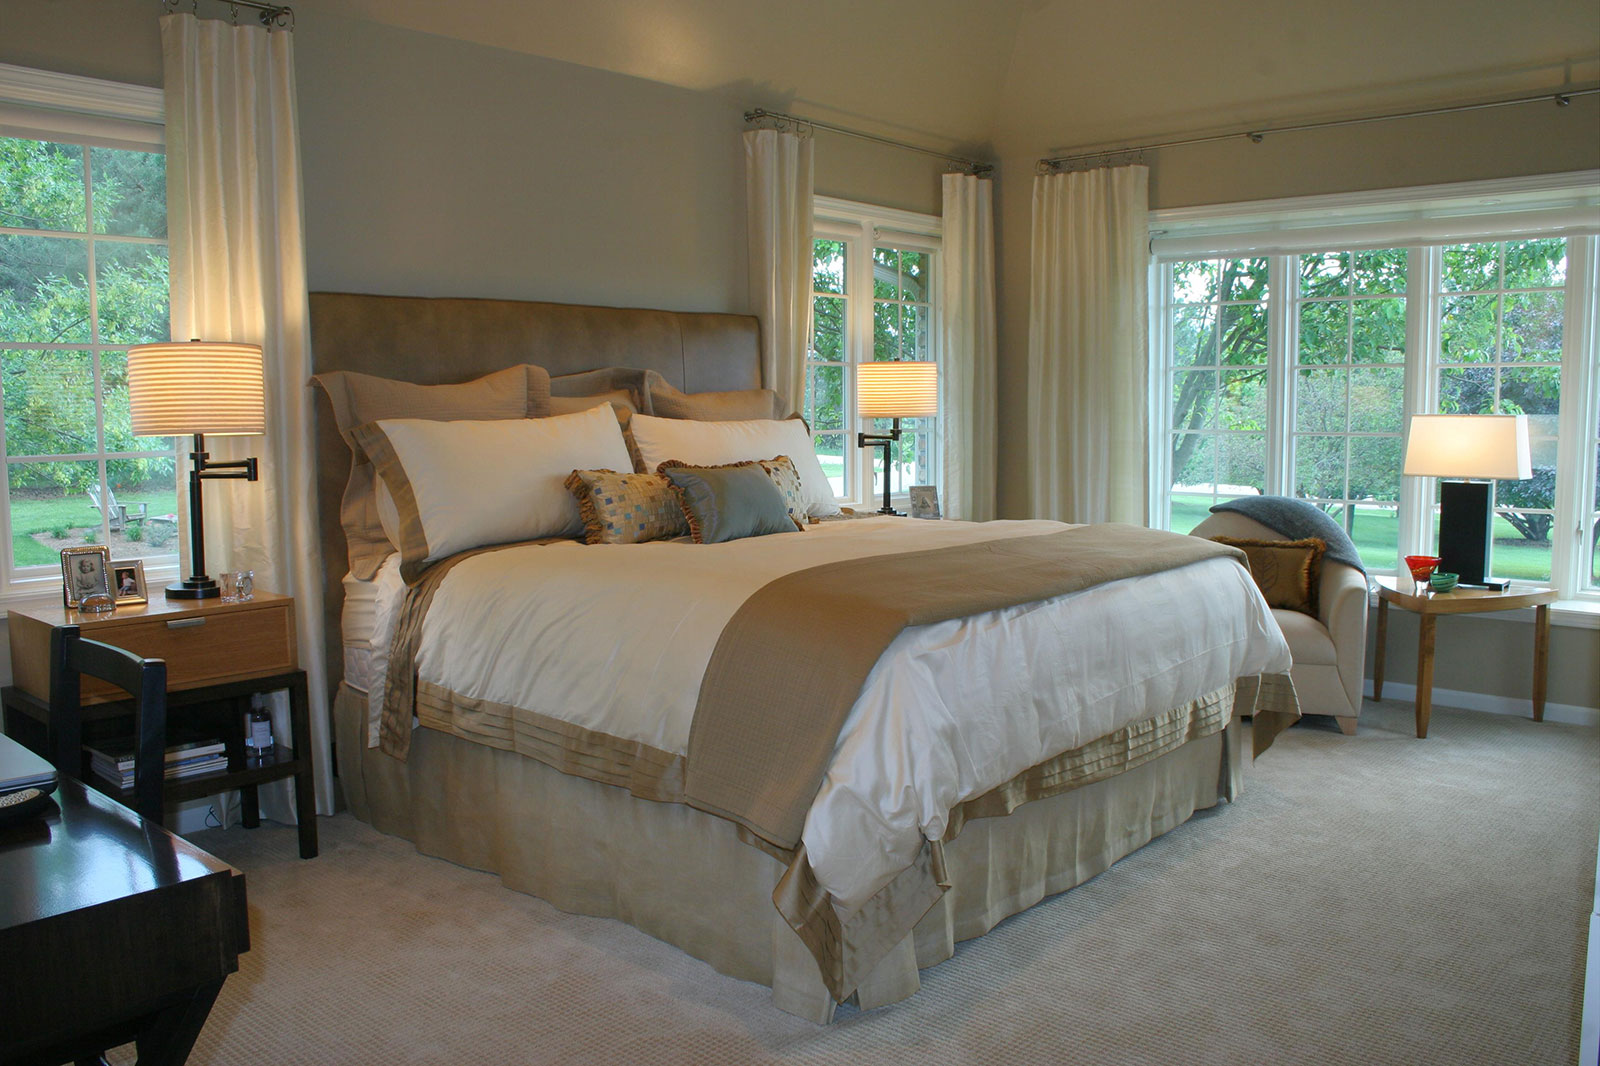 Design Works A Luxury Interior Design Firm At Lincoln In Nebraska,Bedroom Designs Indian Style